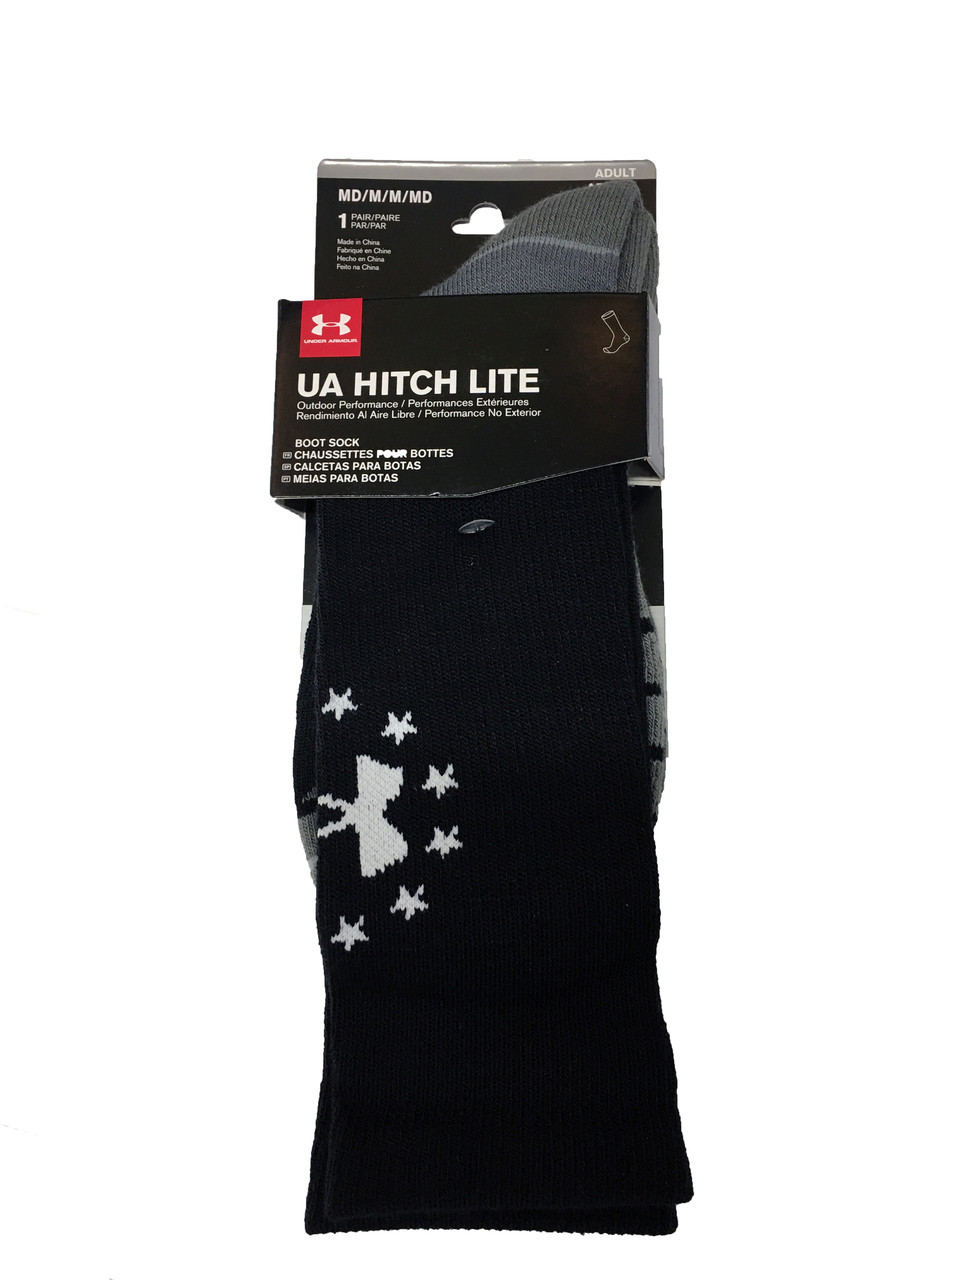 f7c29b466 Under Armour Men's Hitch Lite Boot Socks | Free Shipping on All Orders